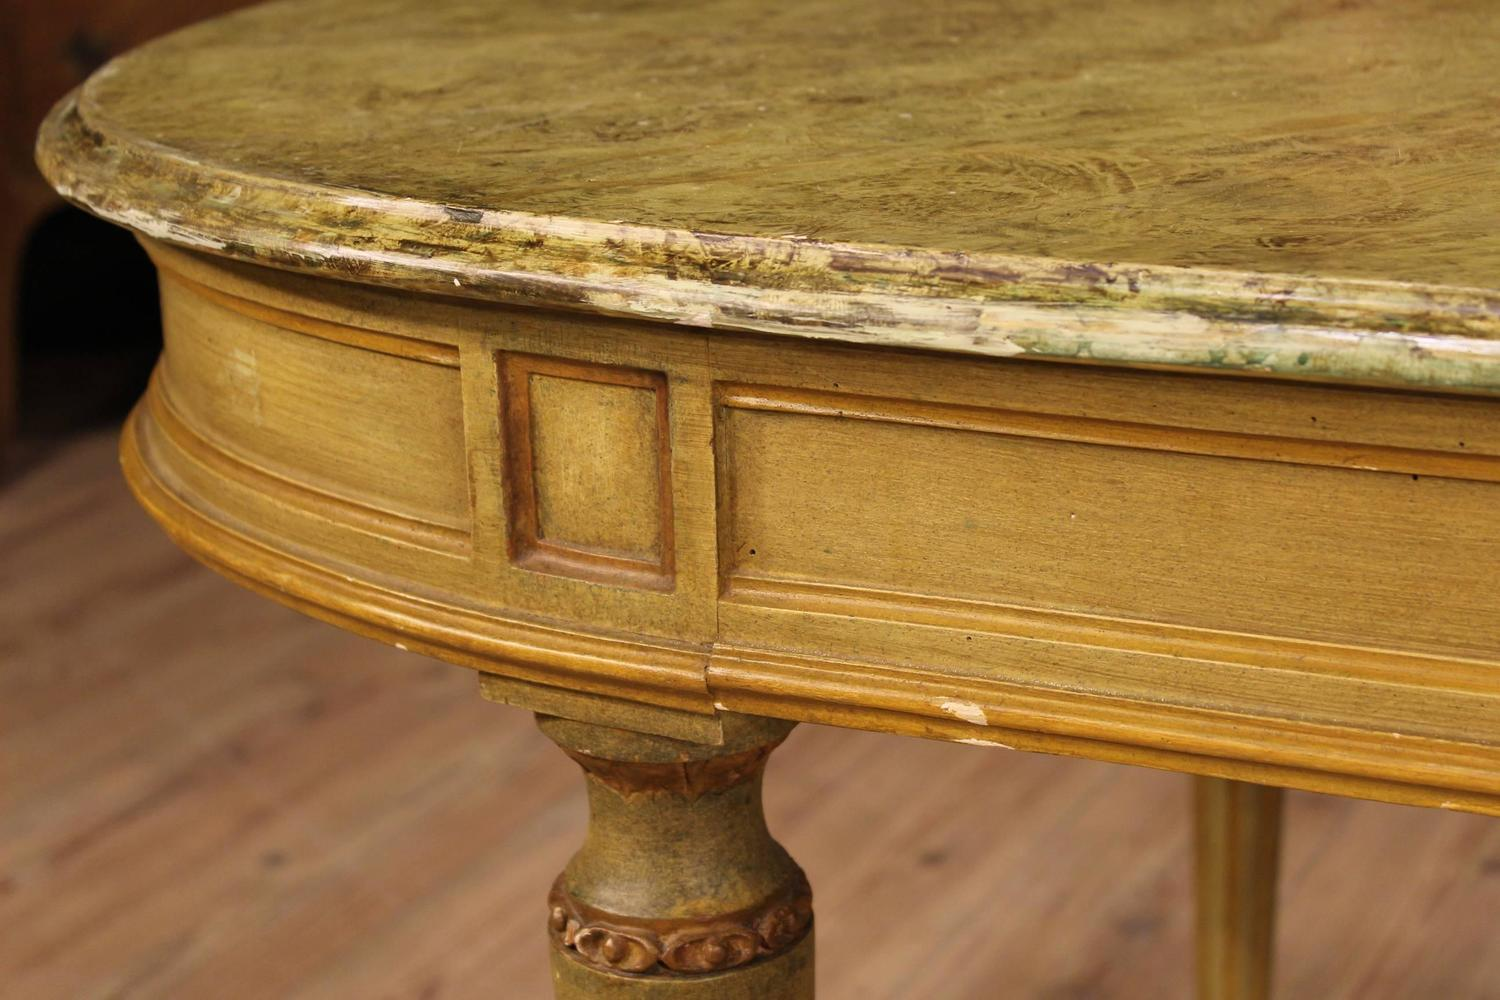 Marvelous photograph of Painting Lacquered Wood Furniture home page.us with #A97B22 color and 1500x1000 pixels